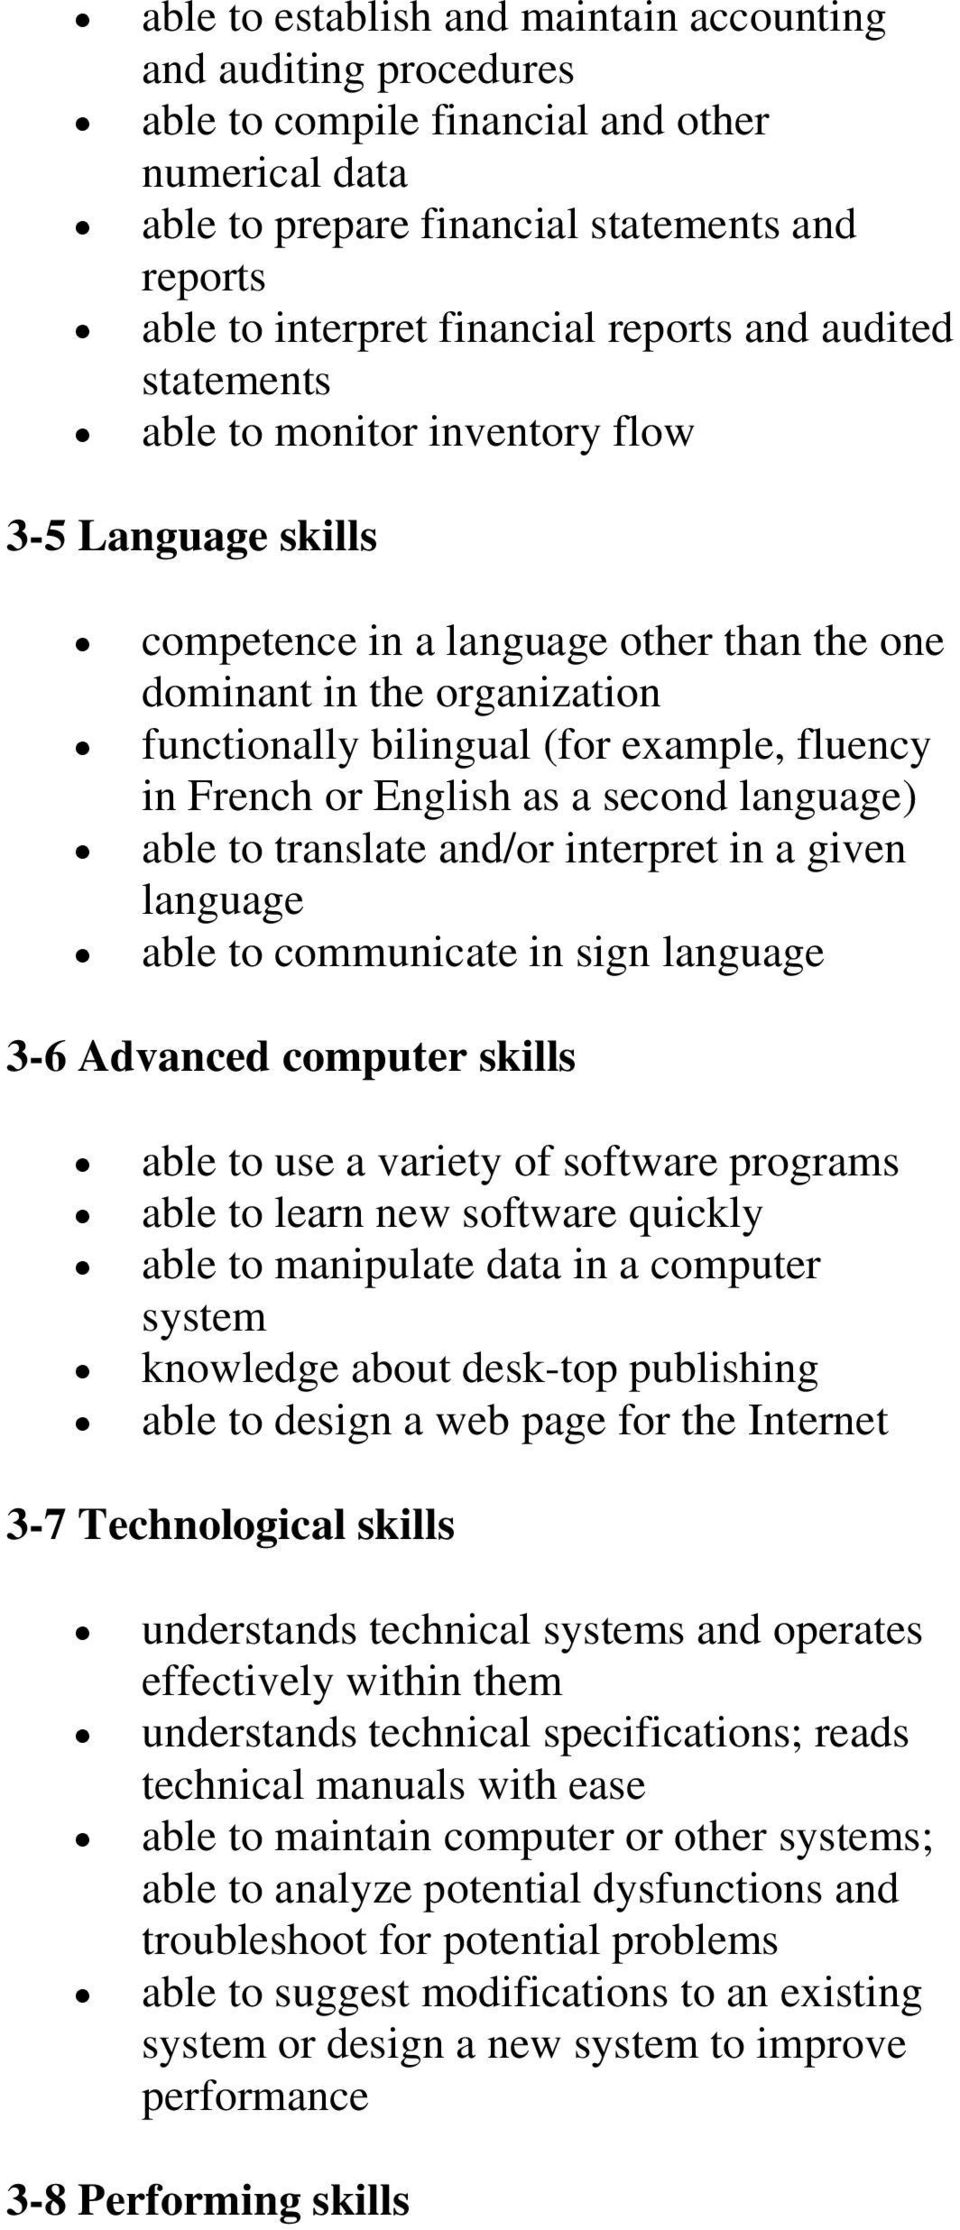 in French or English as a second language) able to translate and/or interpret in a given language able to communicate in sign language 3-6 Advanced computer skills able to use a variety of software